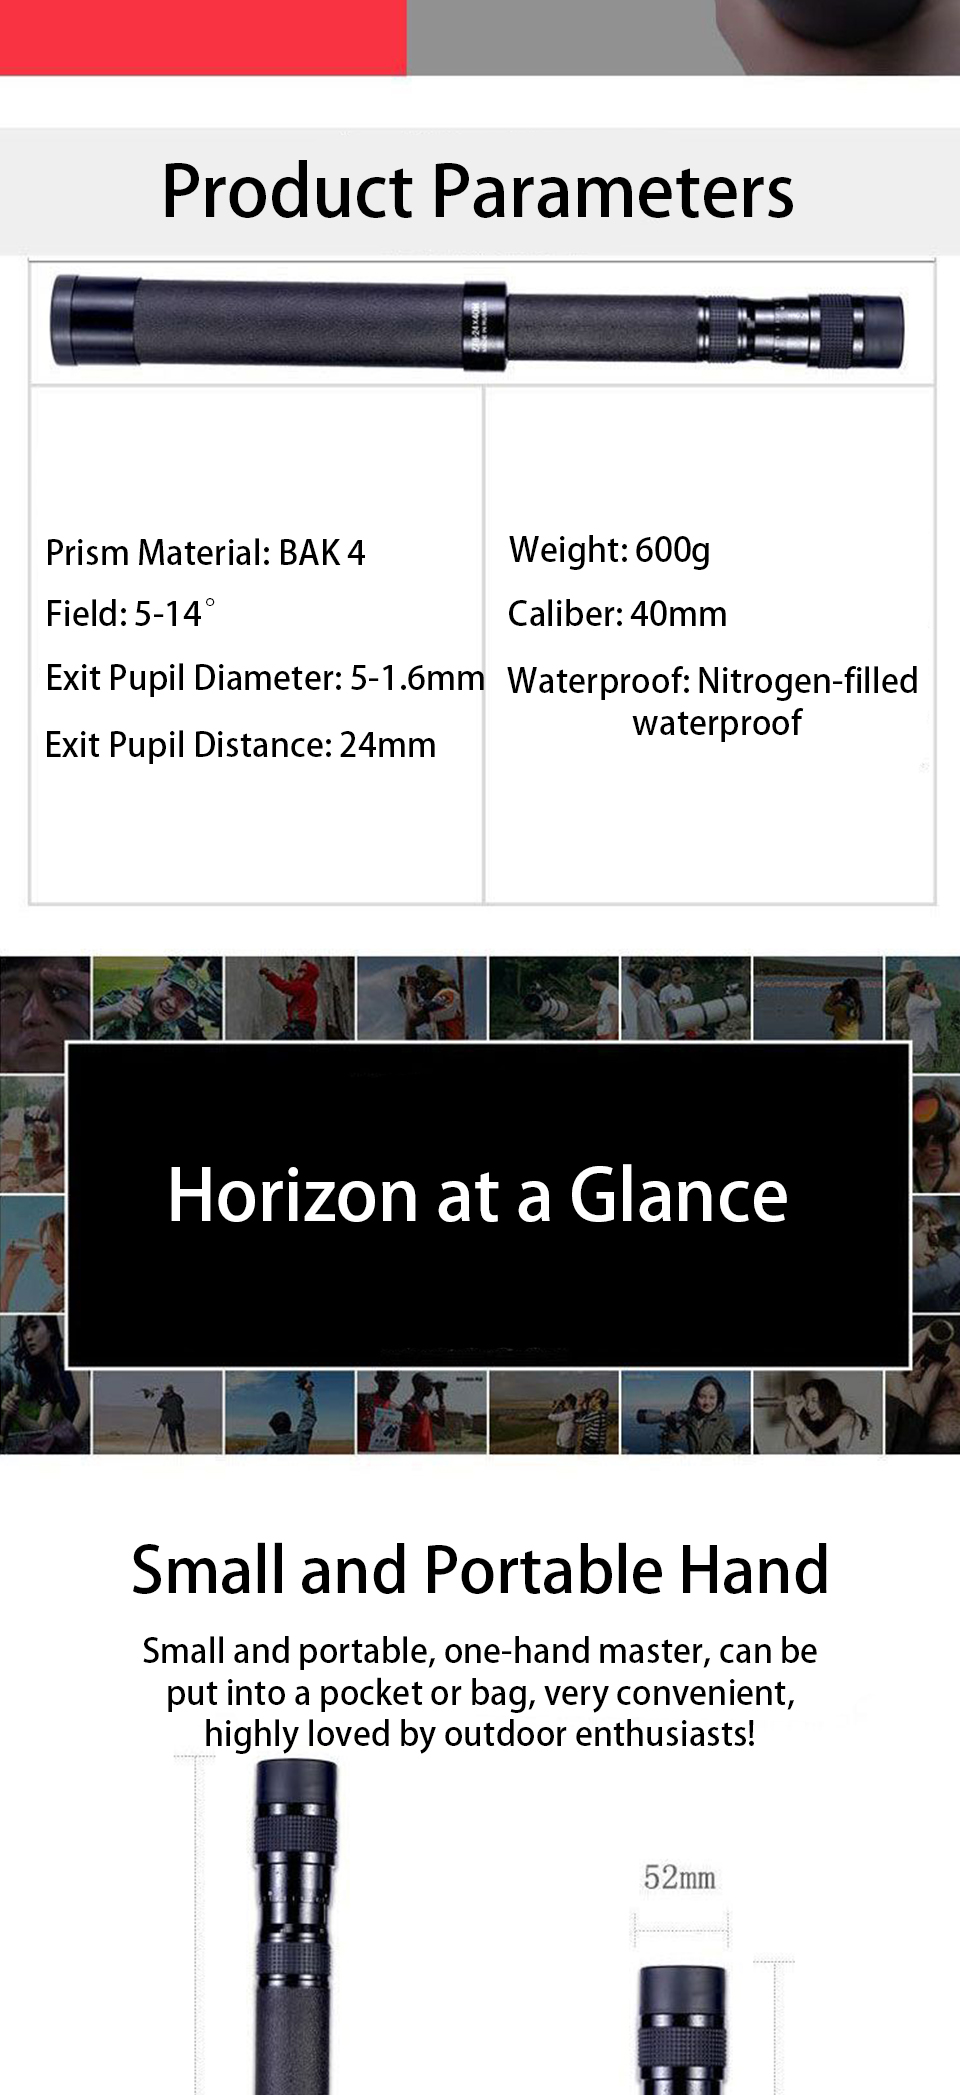 8-24x40 Zoom Stretch Monocular Telescop Professional Nitrogen-filled and Waterproof High Quality BAK4-Prism for Hiking Camping, (Telescope For Sale, Telescope For Adults, Telescope For Kids, Telescope For Beginners, Best Outdoor Telescope).